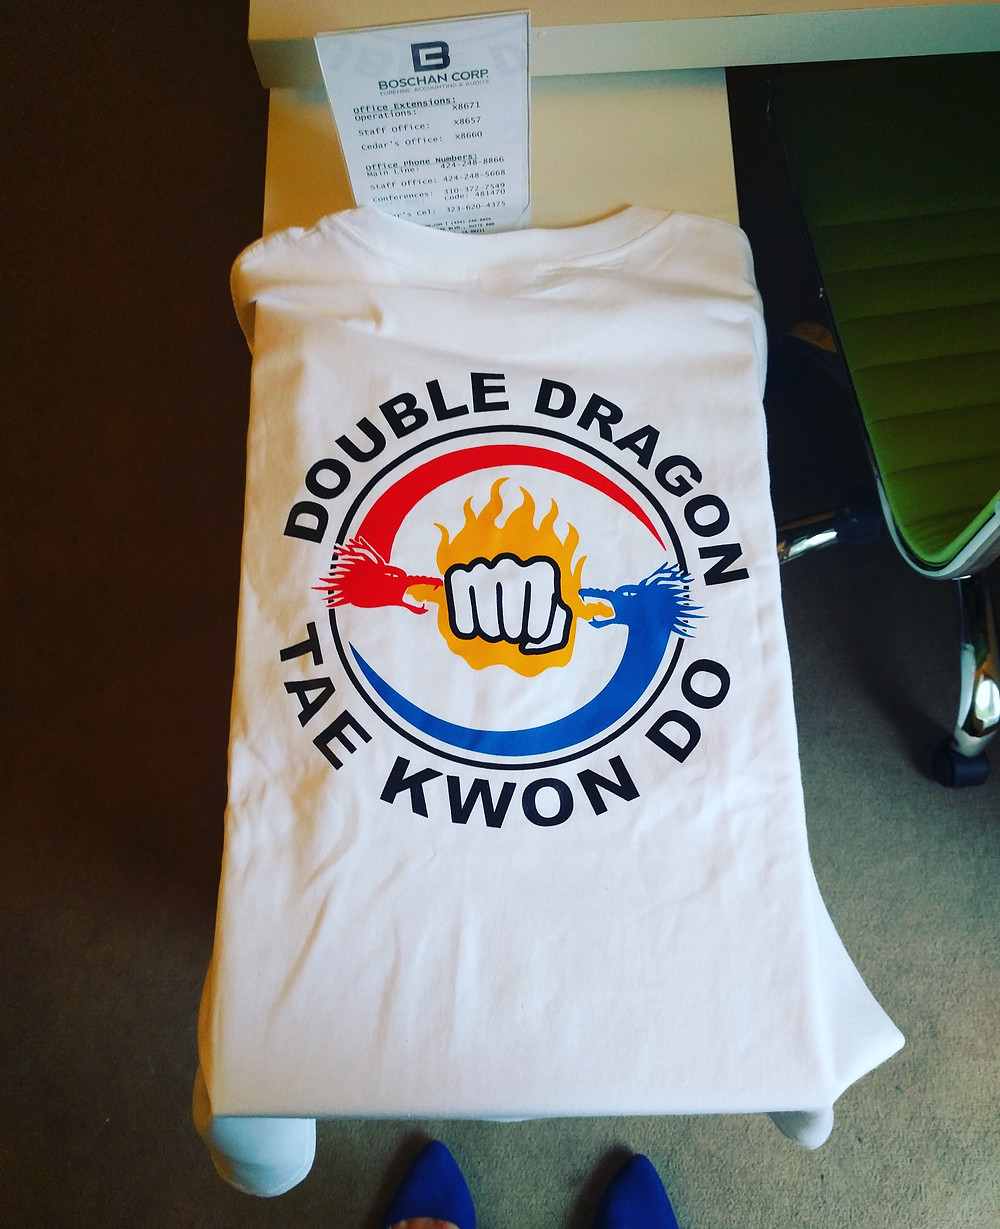 Double Dragon Tae Kwon Do Shirt